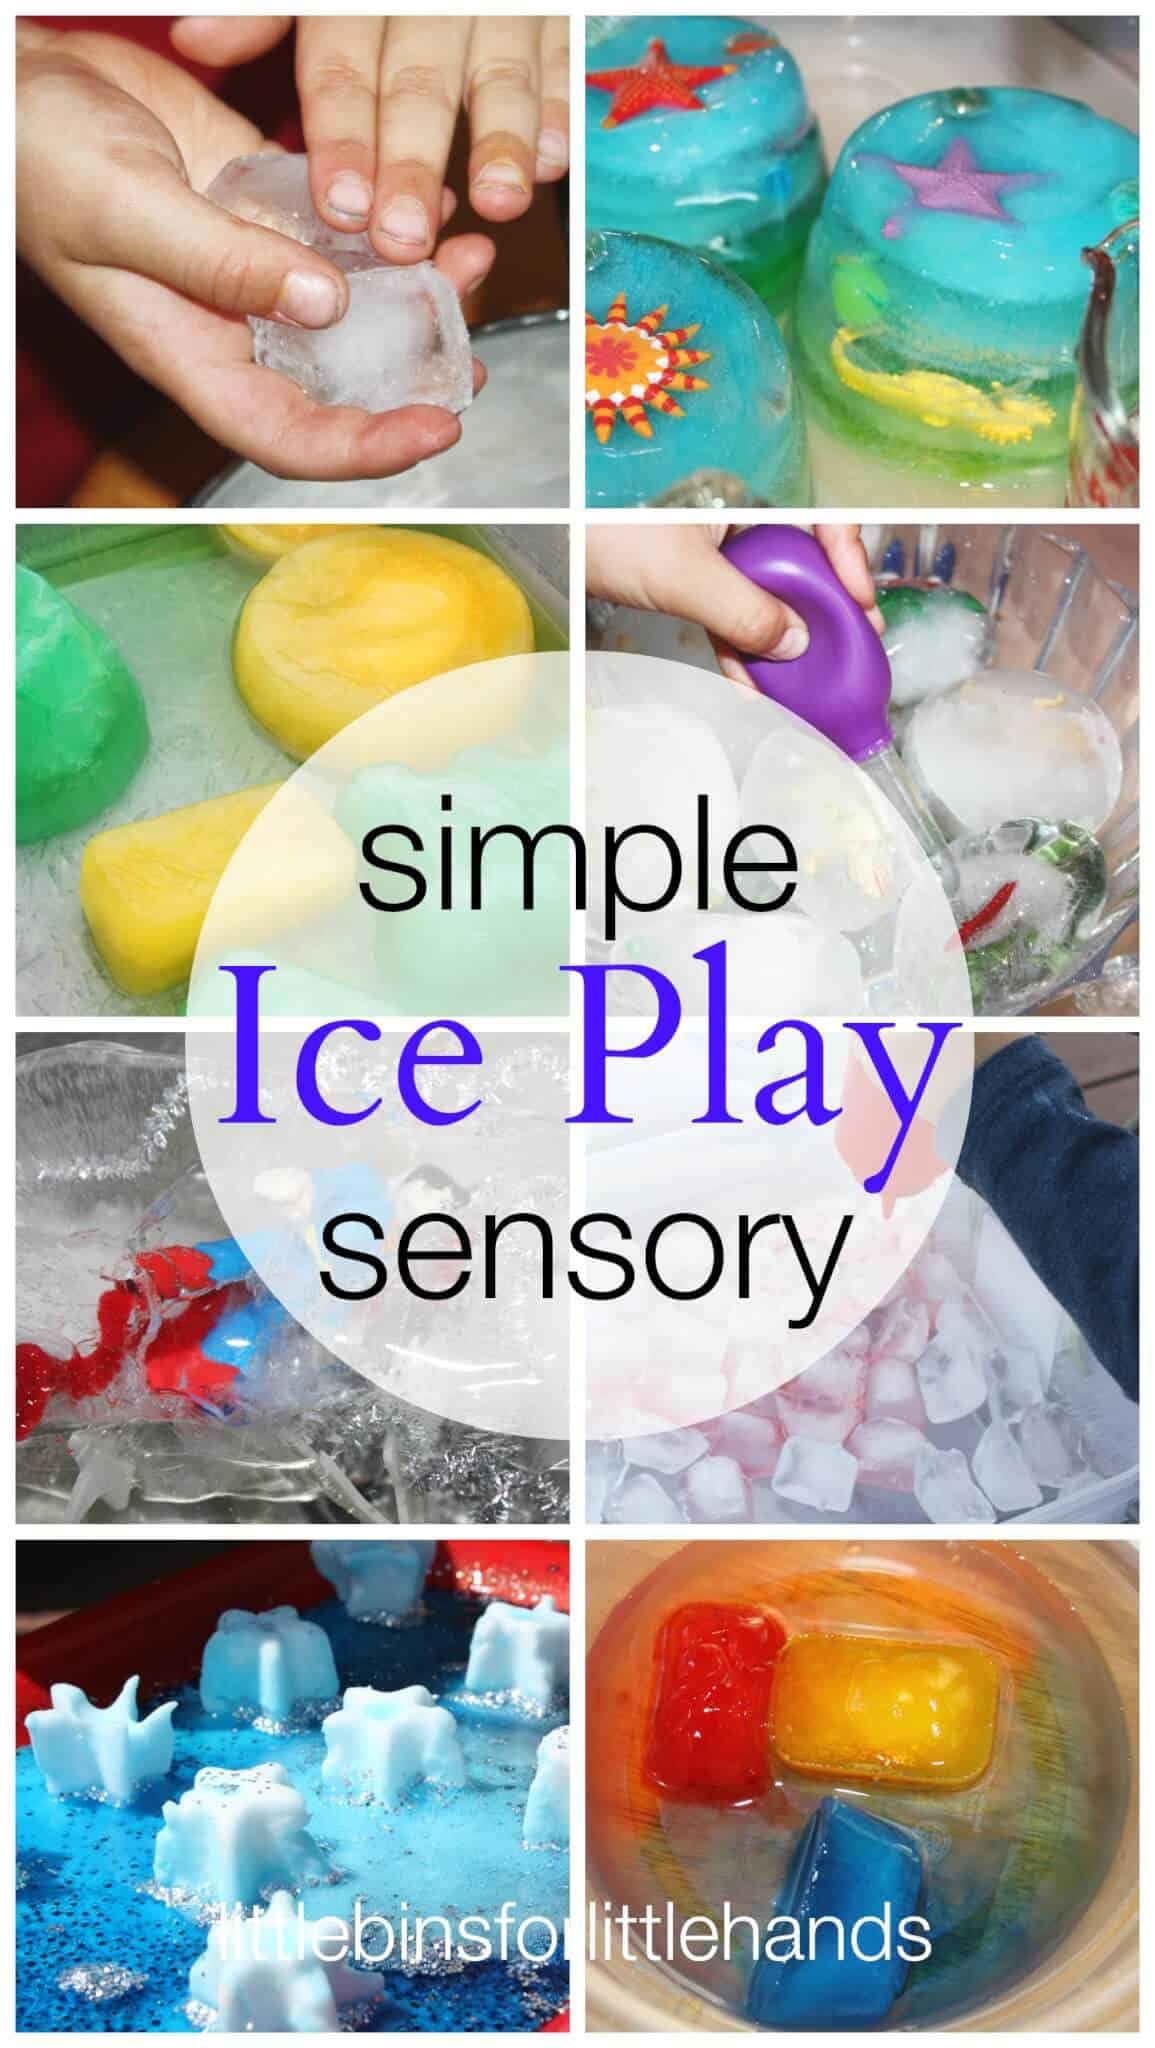 25 Playful Learning Preschool Activities